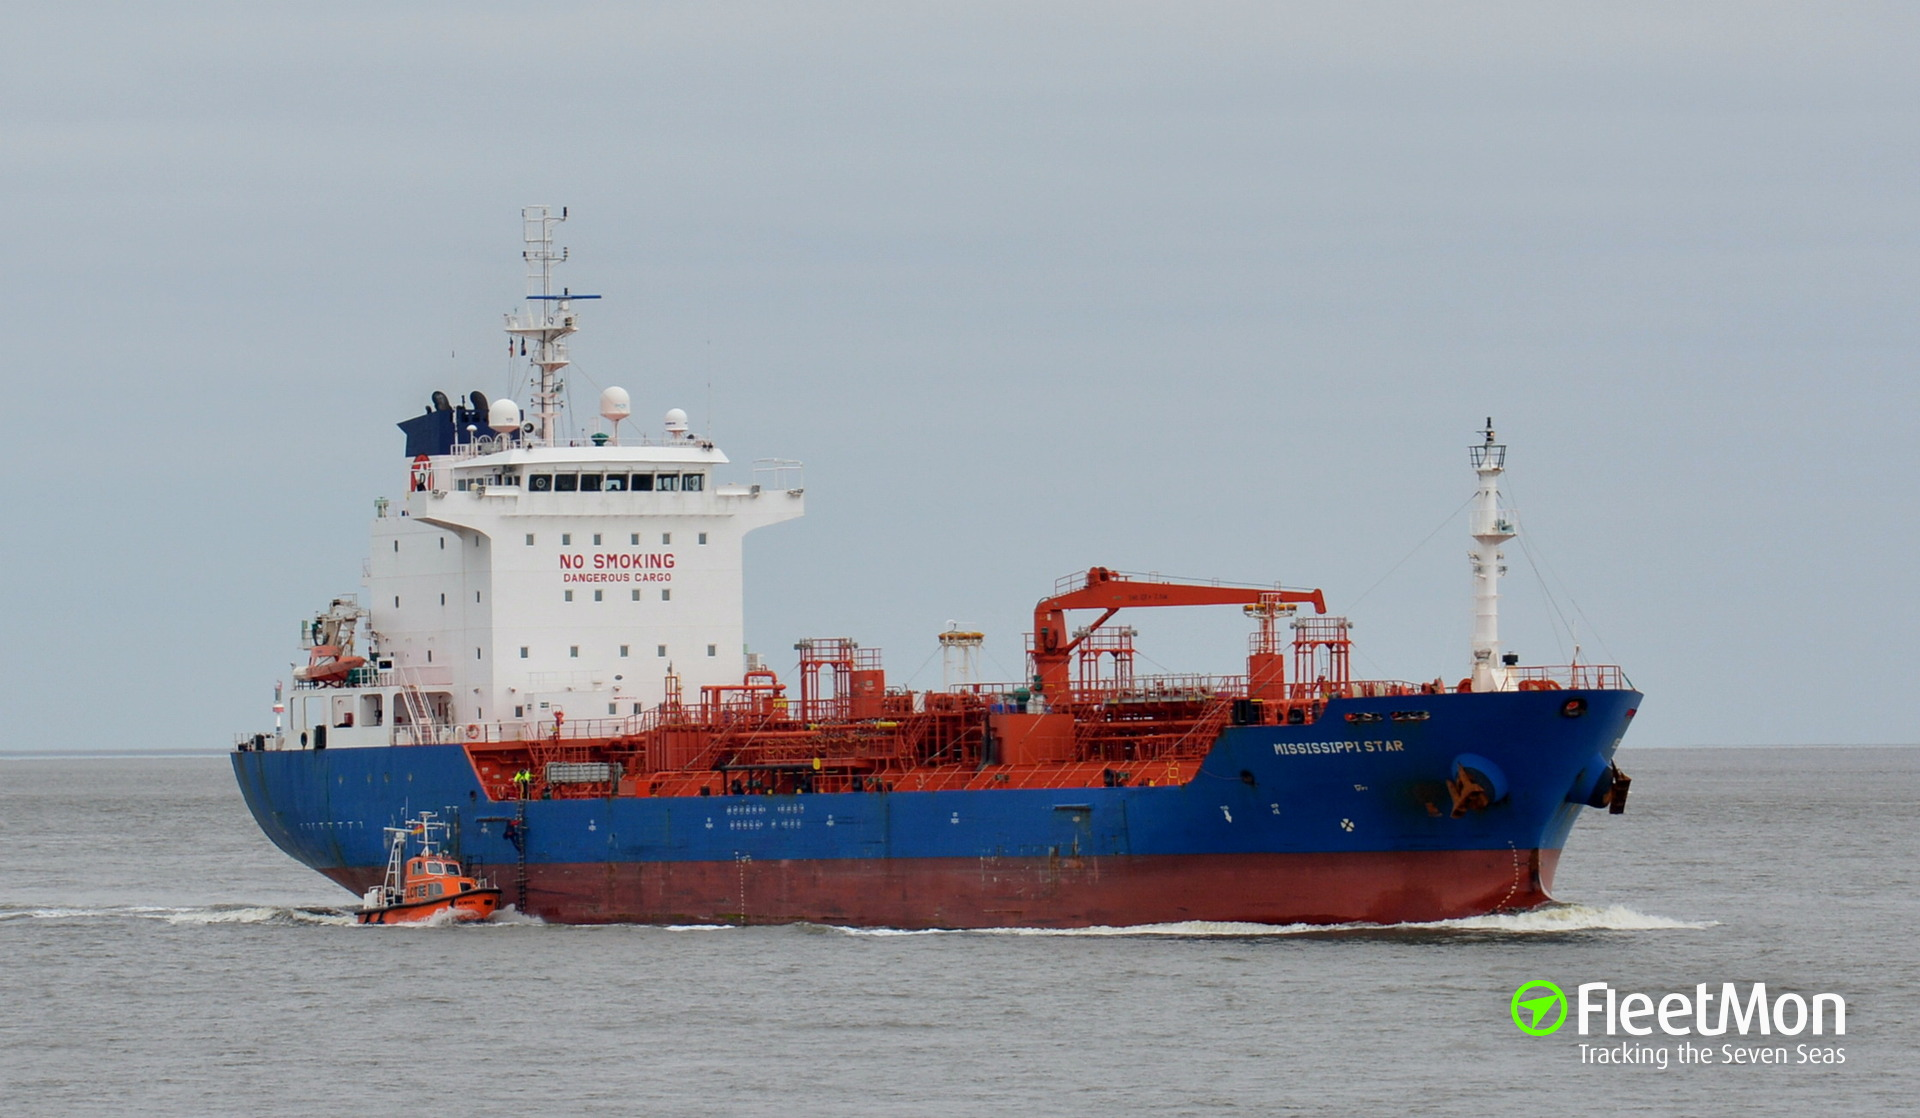 Fire in engine room tanker Mississippi Star, North sea